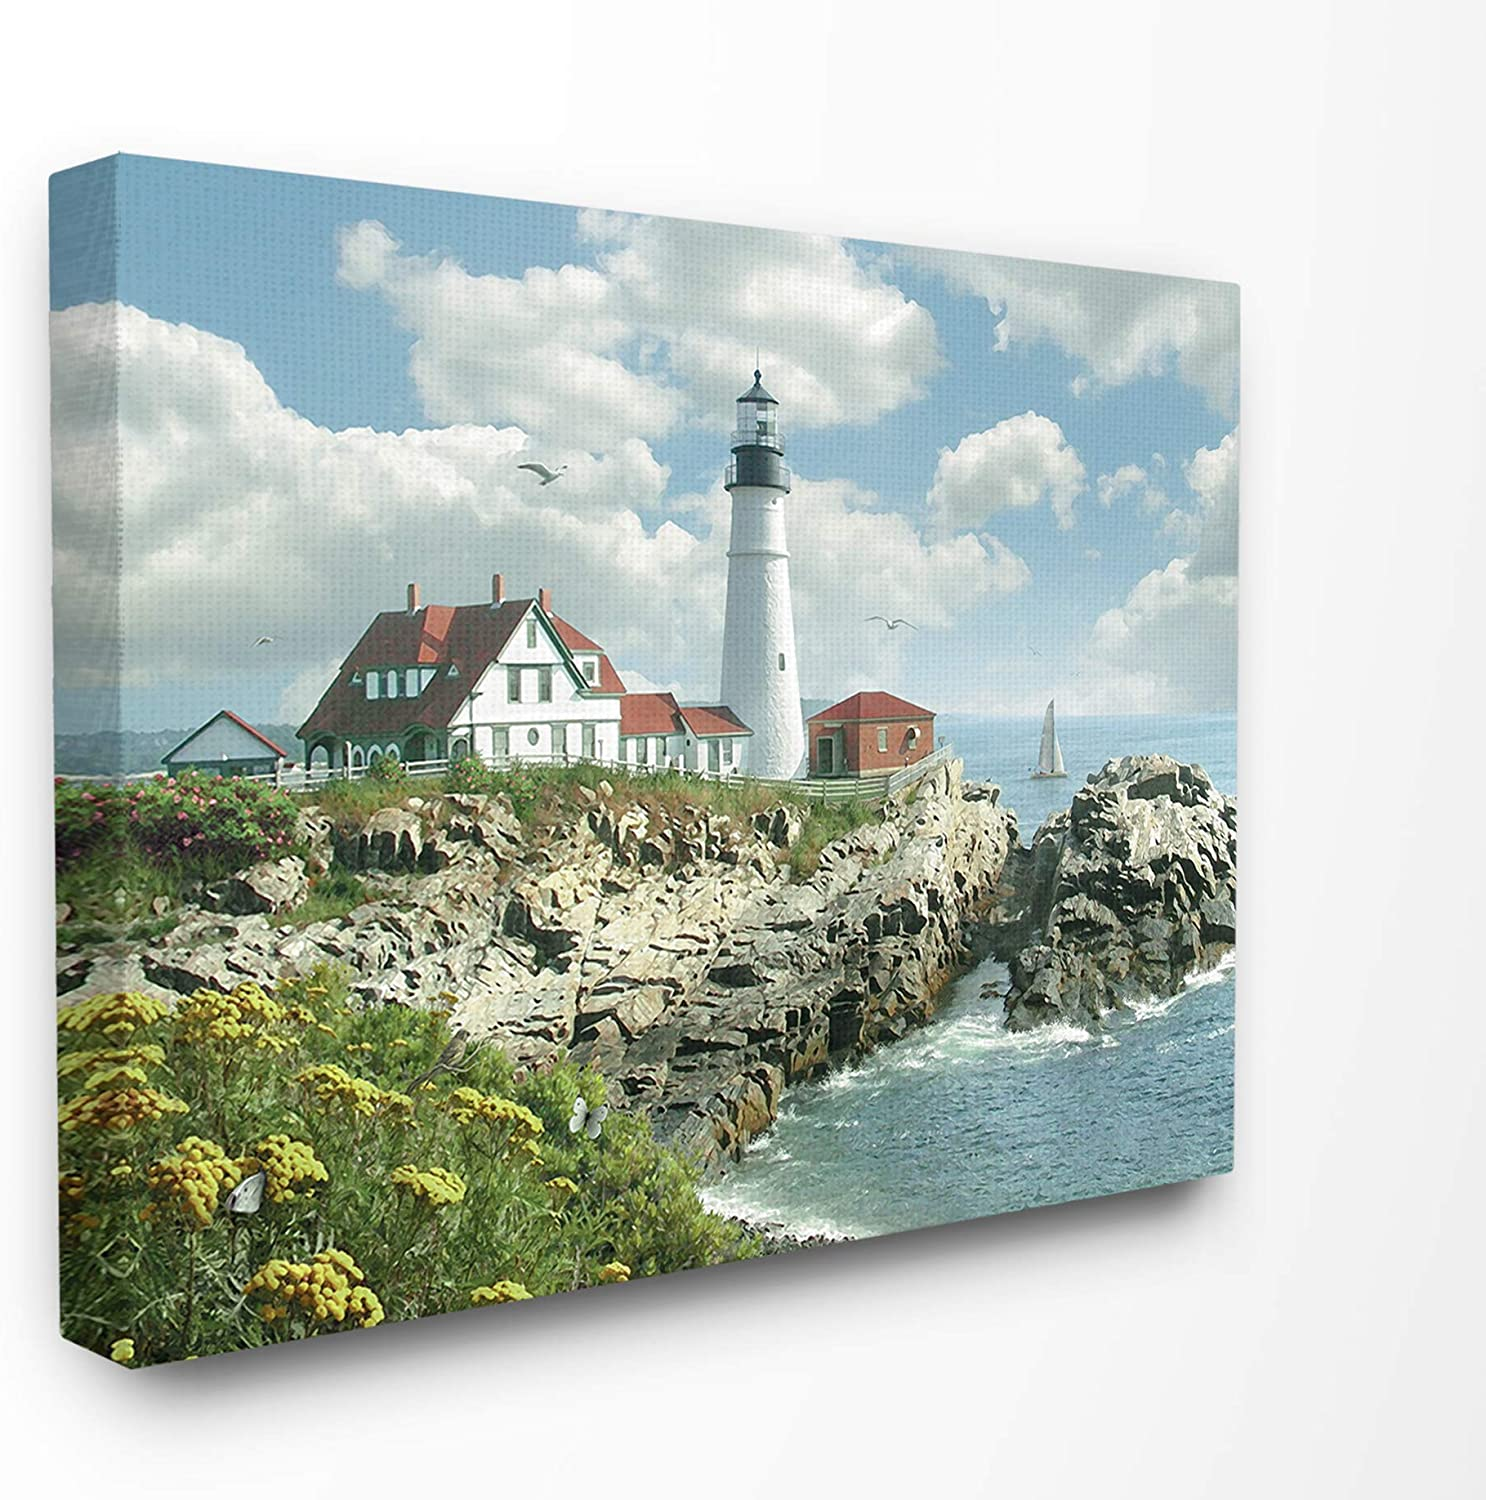 The Stupell Home Decor Portland Head Lighthouse Scene Grassy Ocean Side Peninsula with Sail Boat Stretched Canvas Wall Art, 11x14, Multi-color